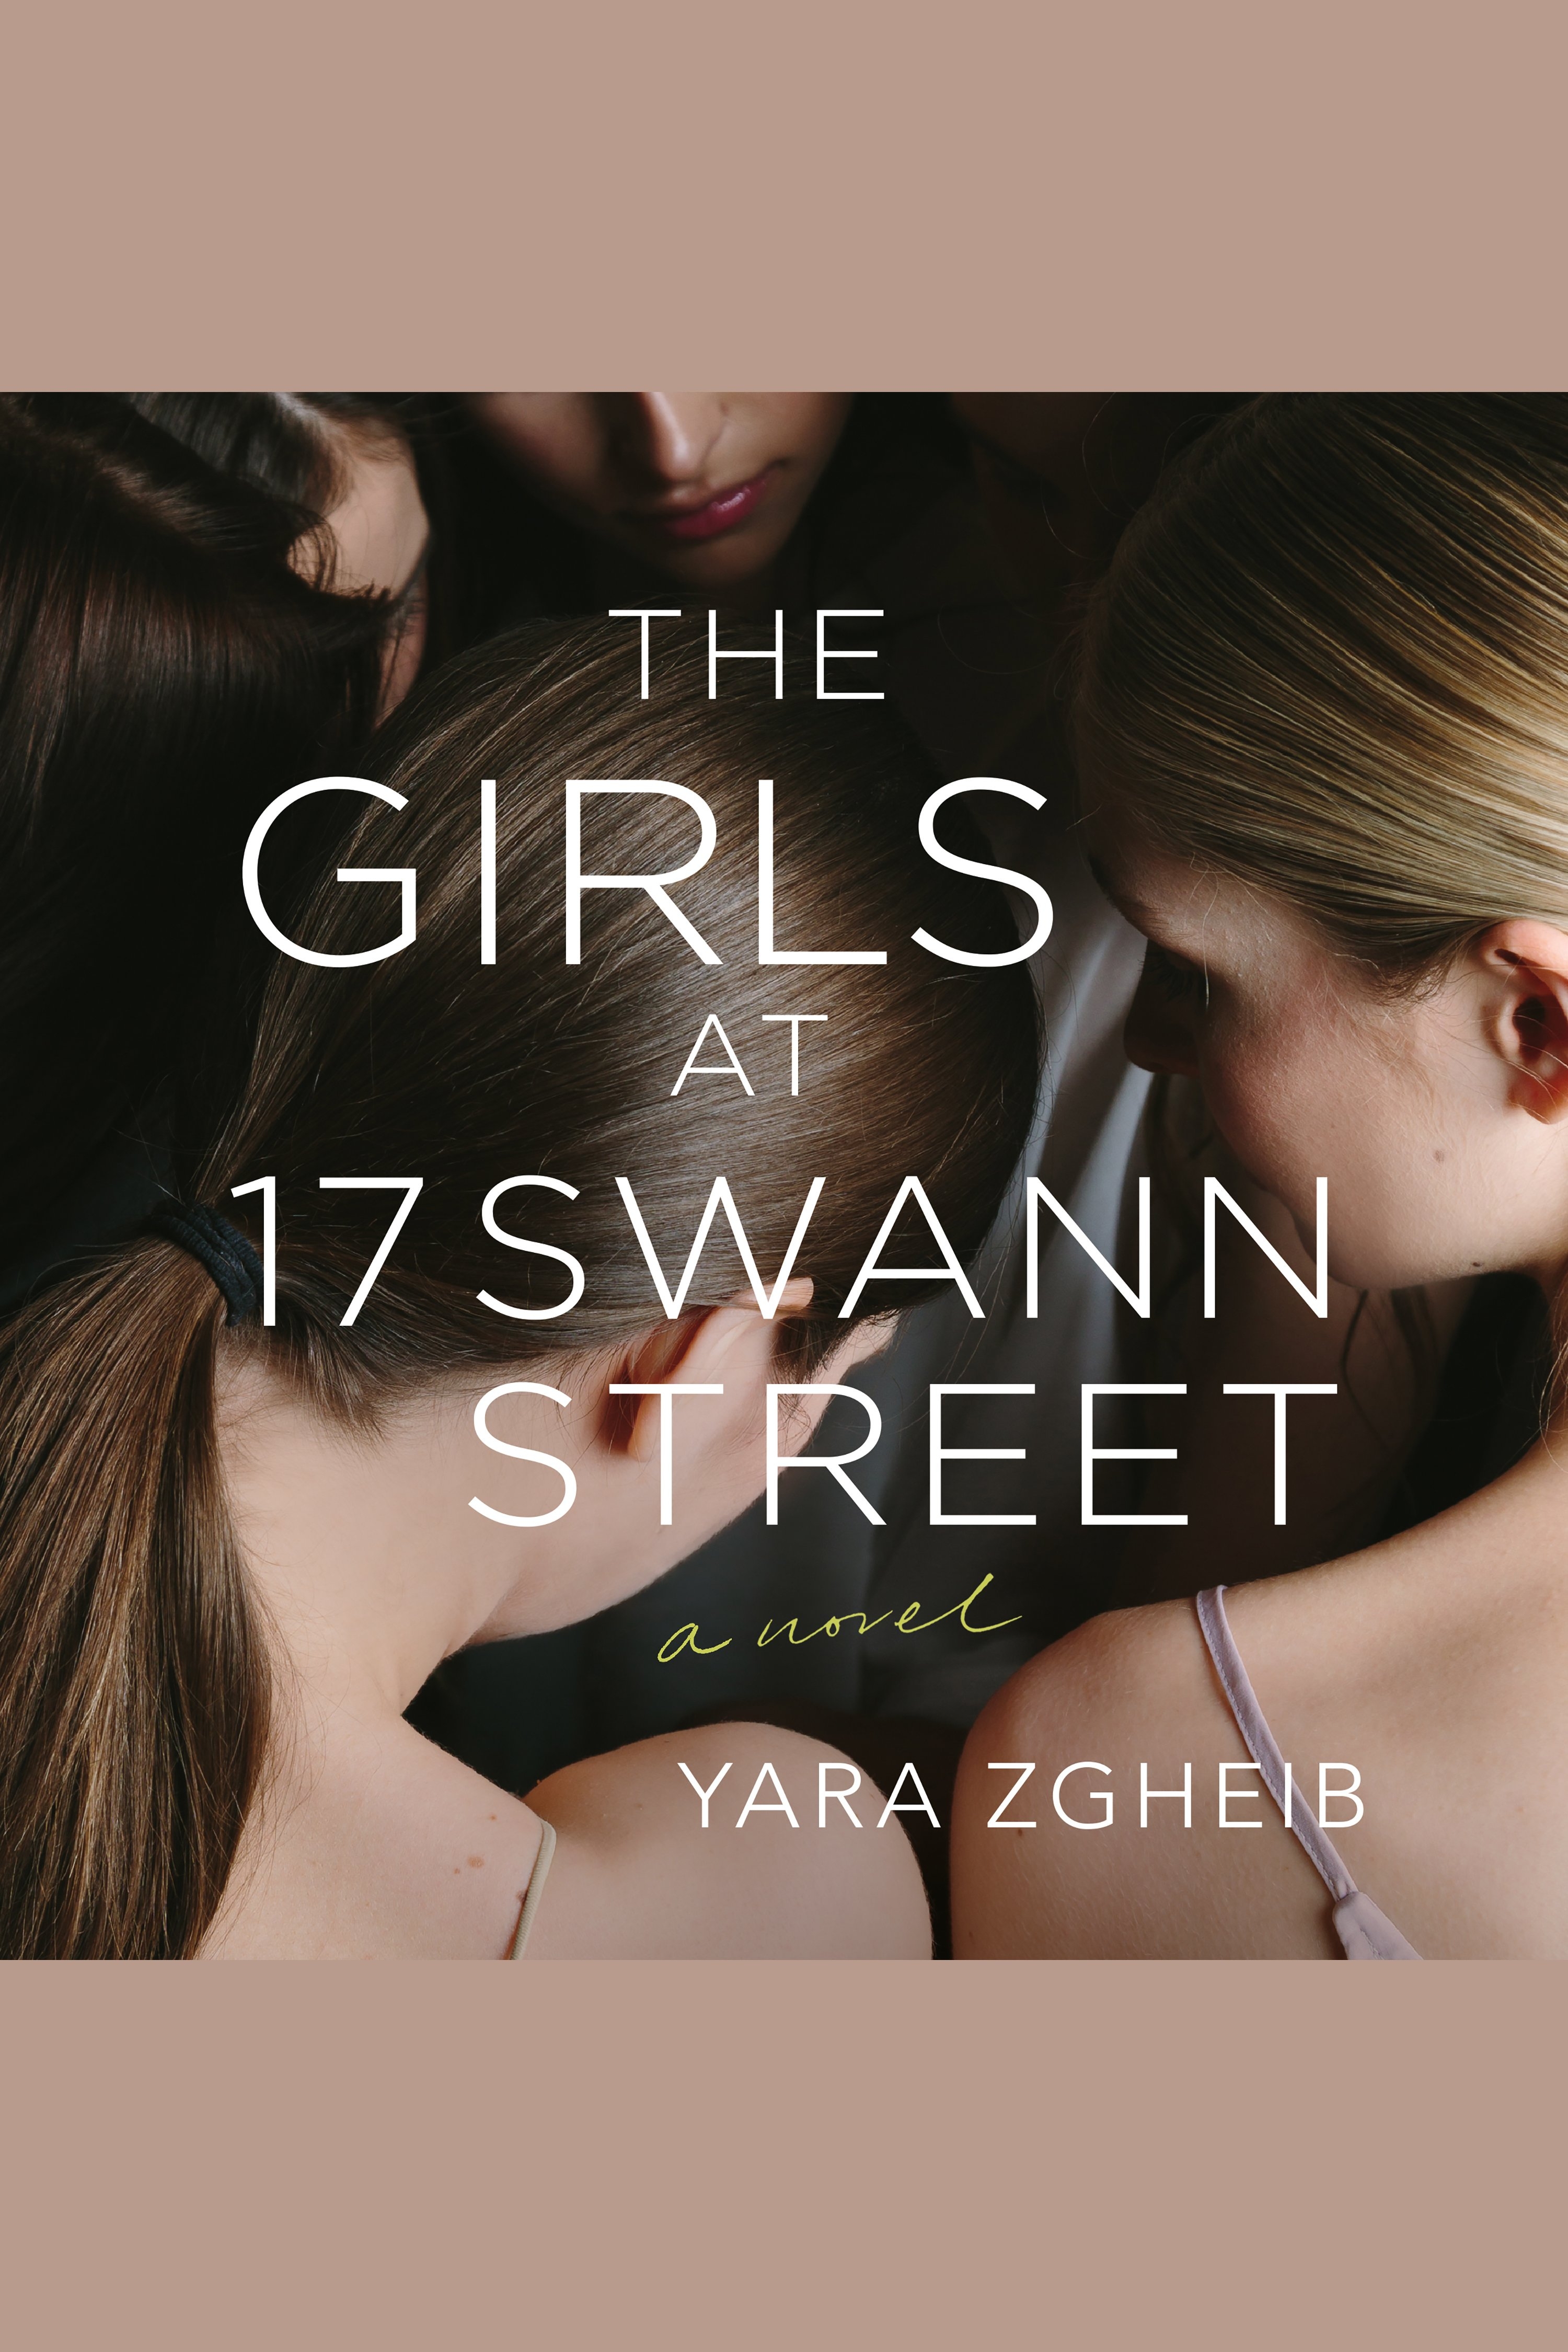 Girls at 17 Swann Street, The [electronic resource] : A Novel